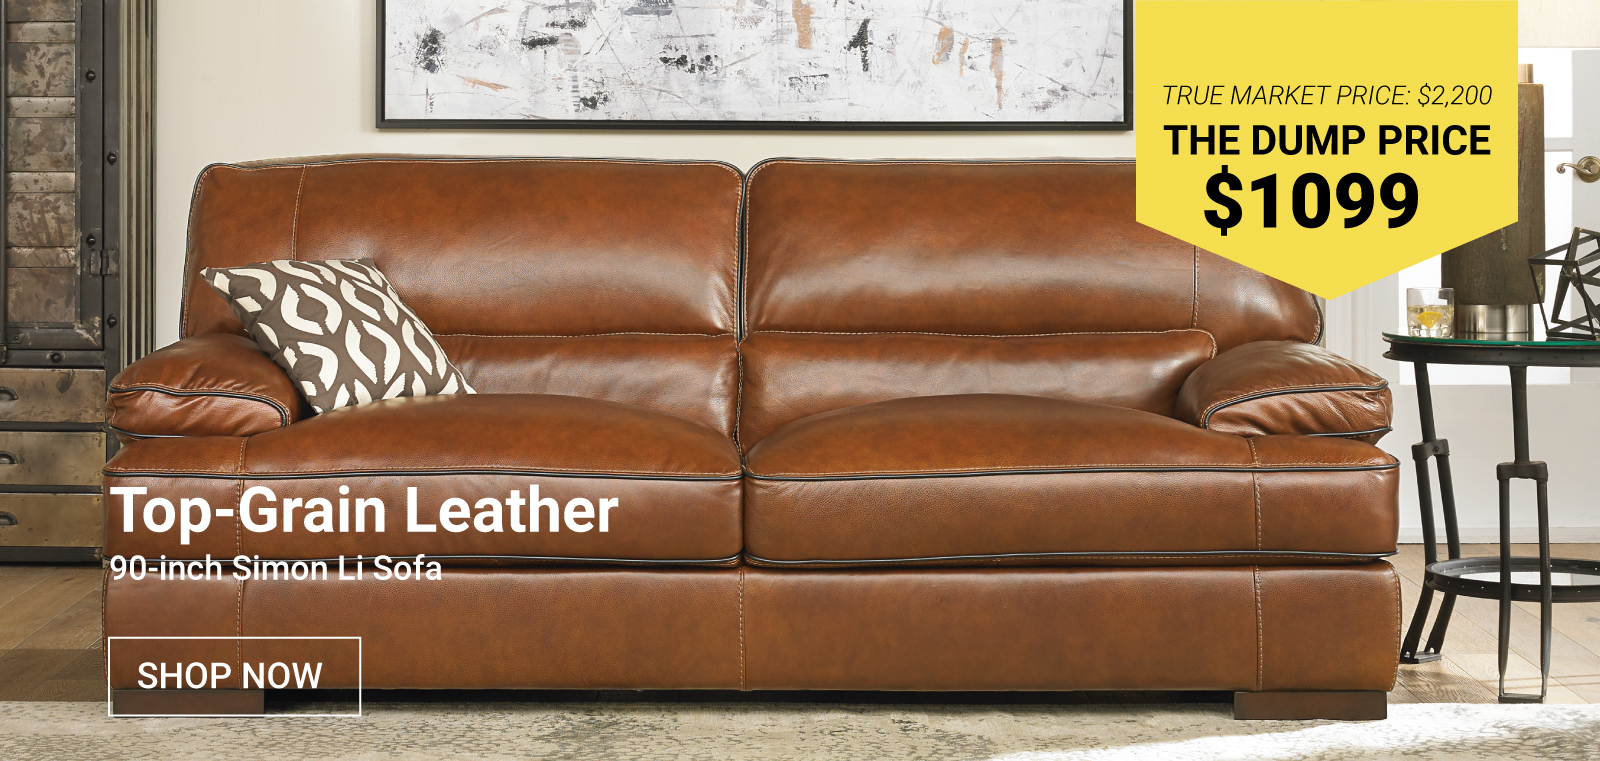 Top-Grain Leather 90-Inch Simon Li Sofa $1099